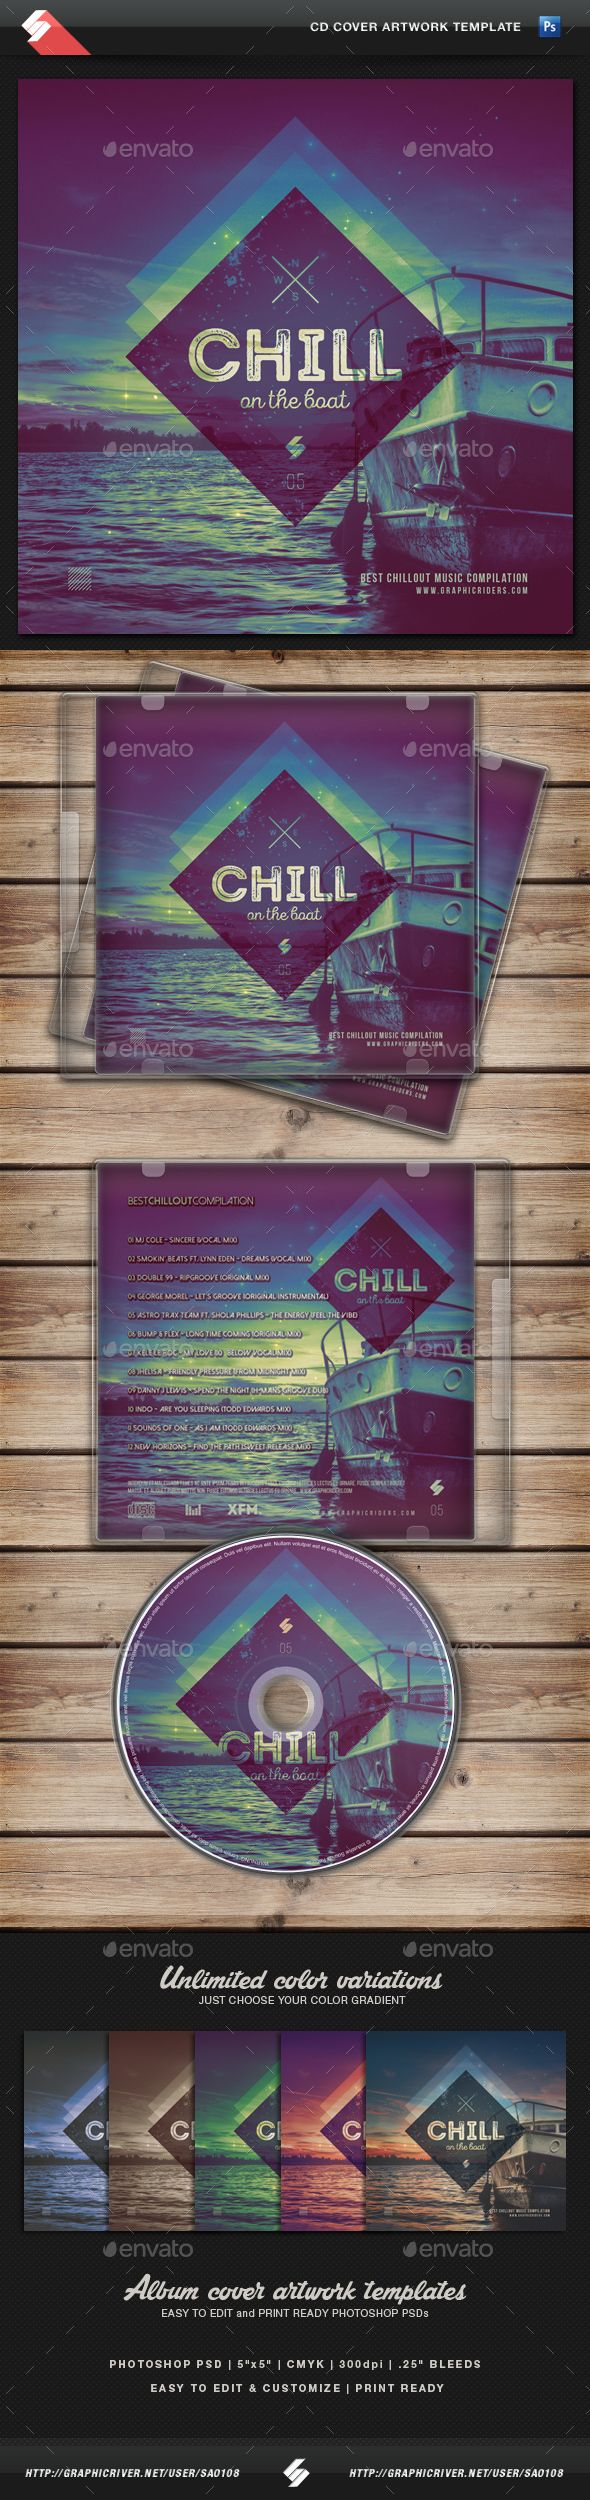 Chill On The Boat - Music CD Cover Template — Photoshop PSD #cd #cover • Available here → https://graphicriver.net/item/chill-on-the-boat-music-cd-cover-template/13282067?ref=pxcr